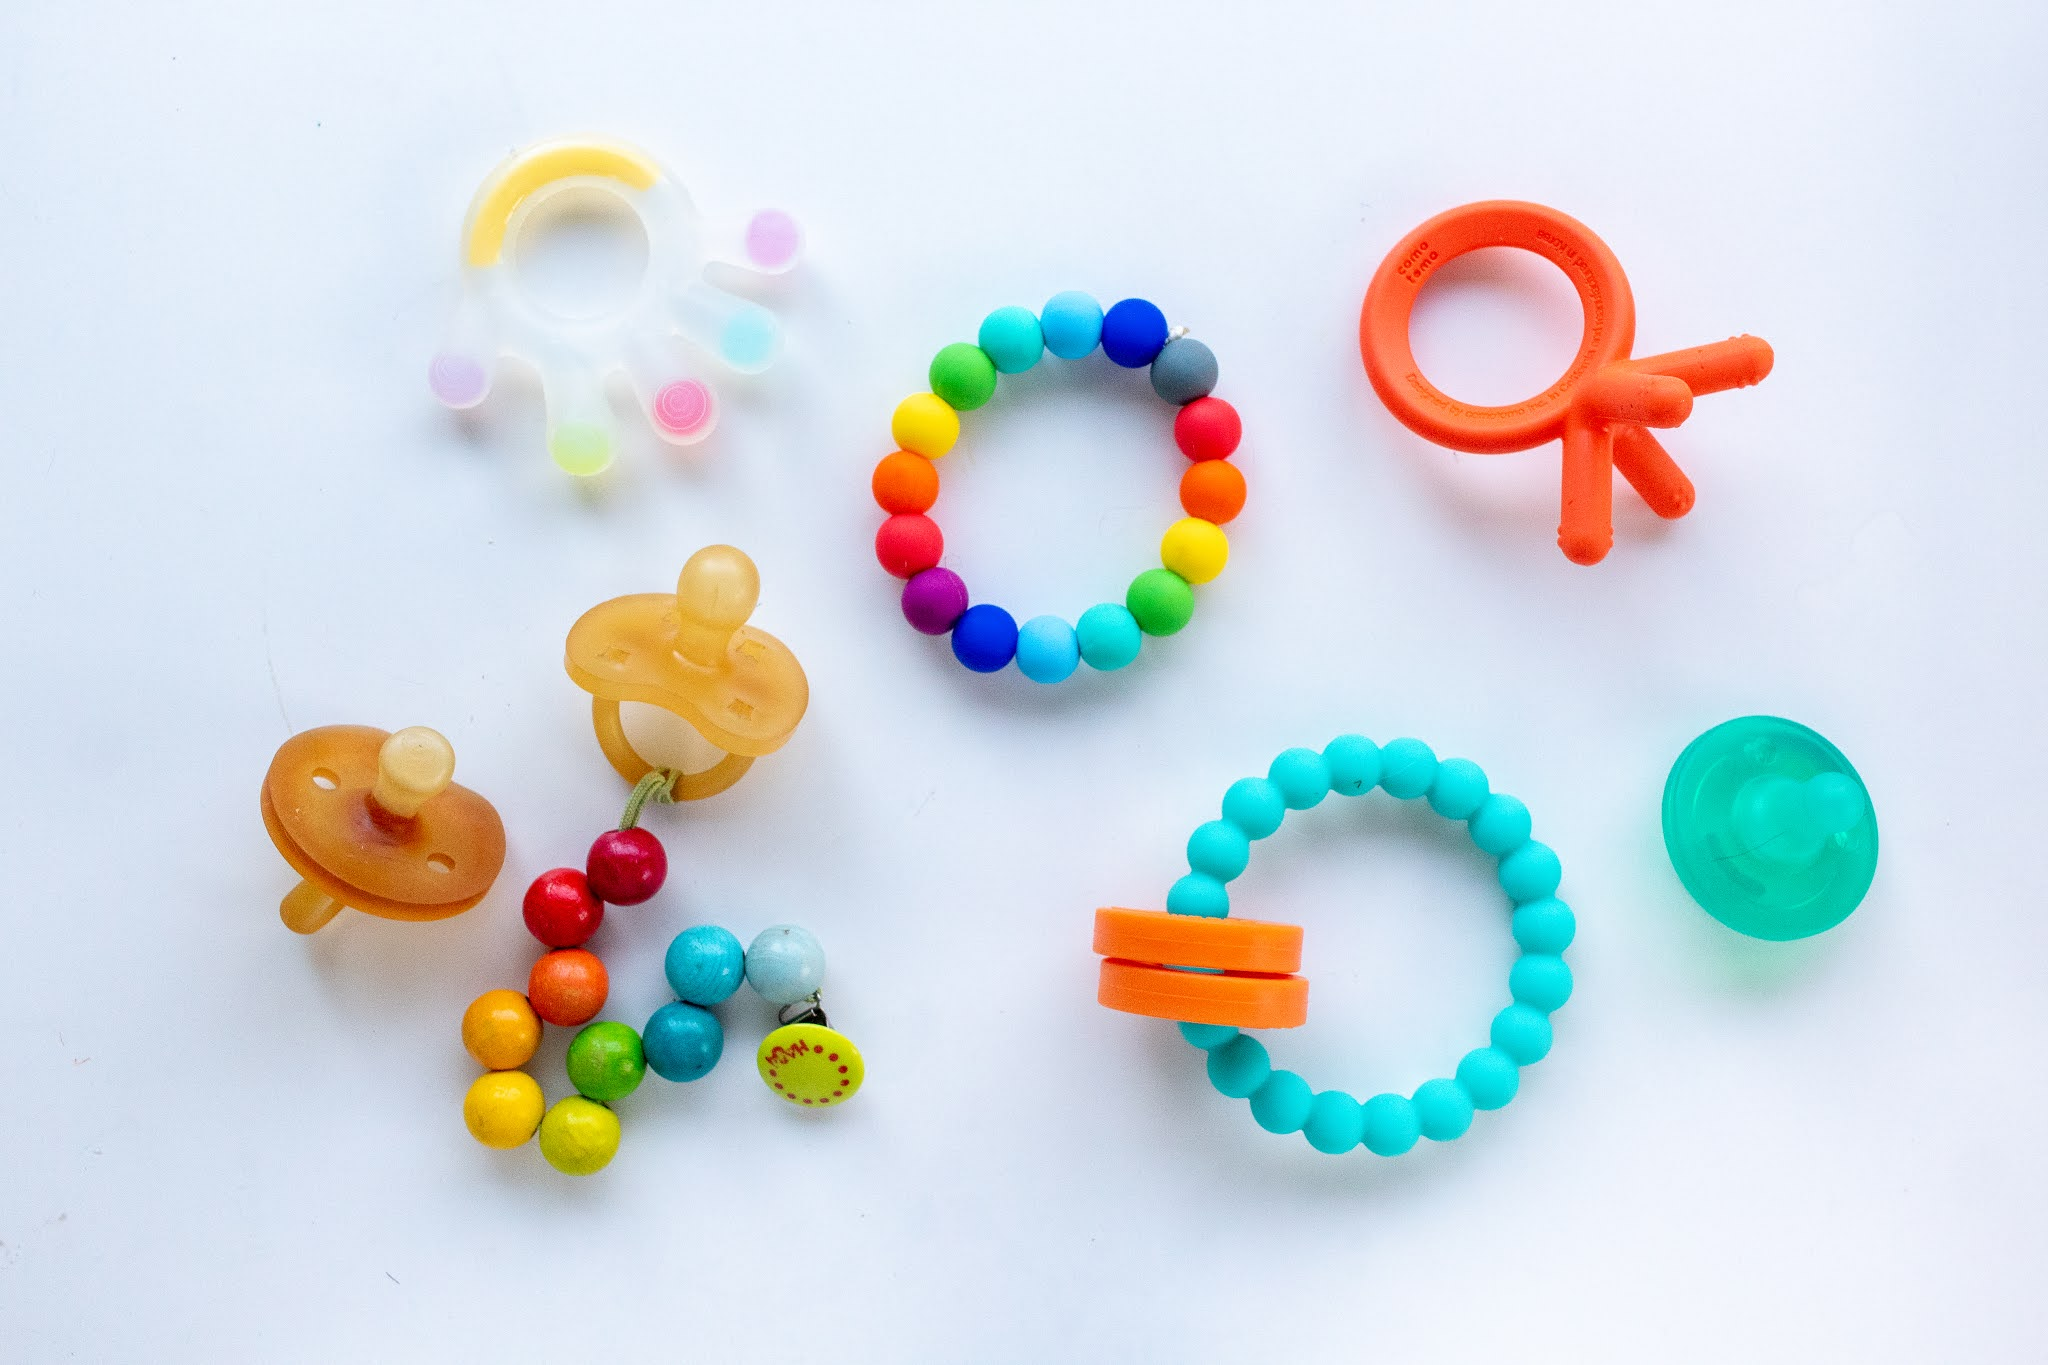 Montessori baby teething toys - here are some that help to soothe your baby's mouth and provide great entertainment